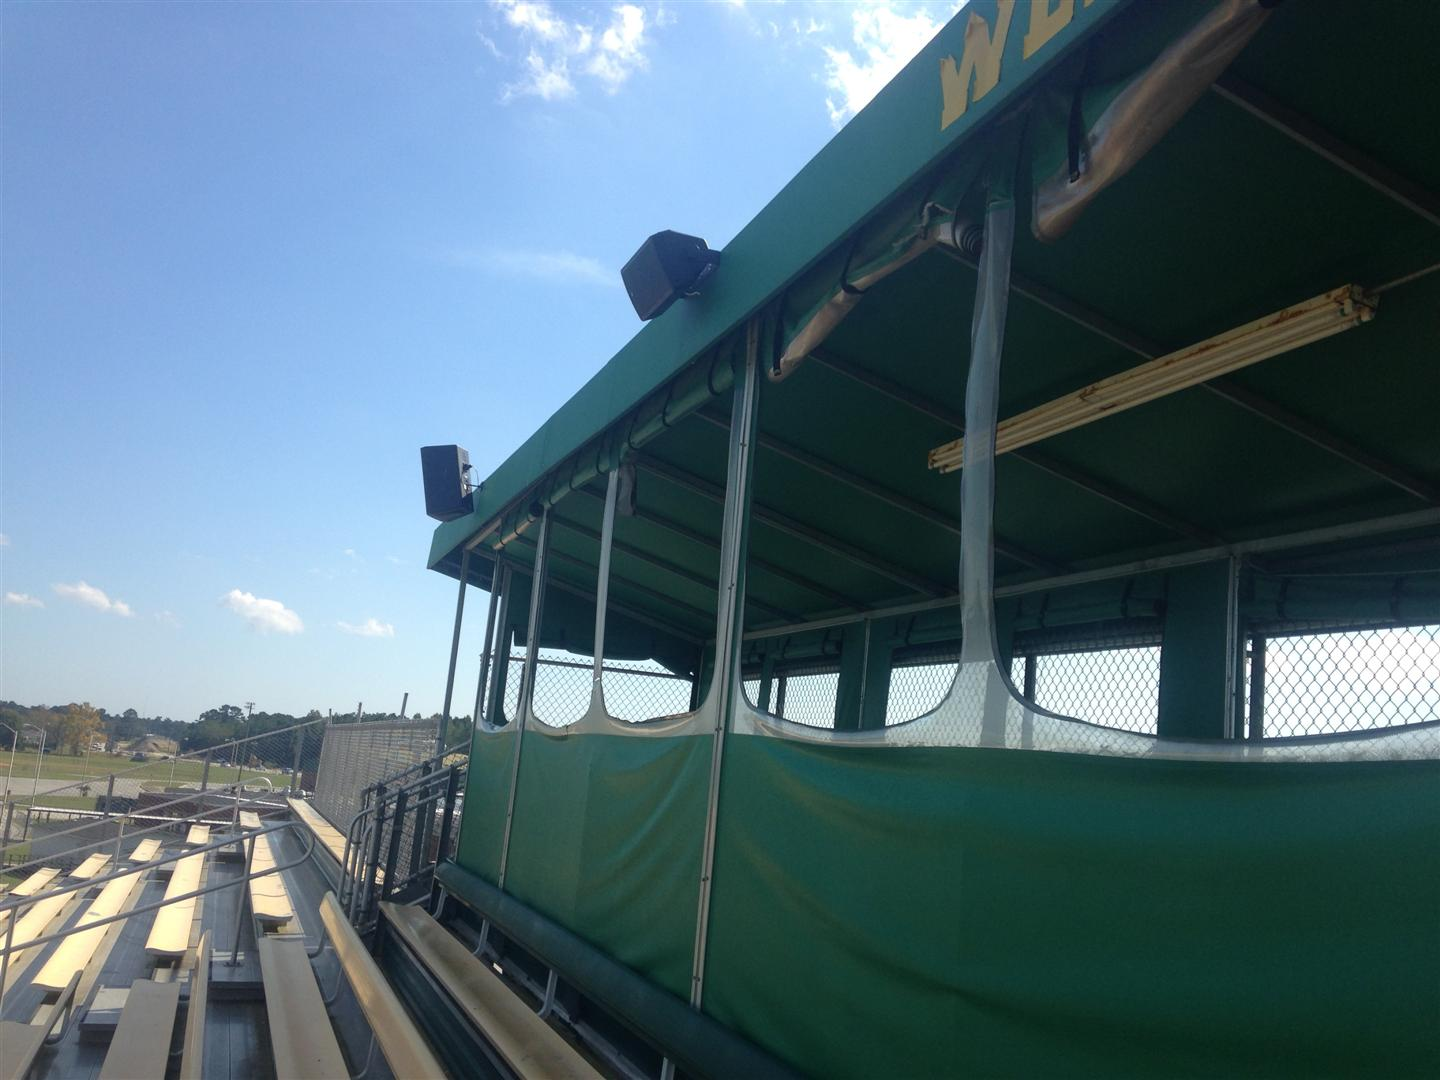 Speaker System Purchased by Athletic Boosters, Band Boosters, and WOHS